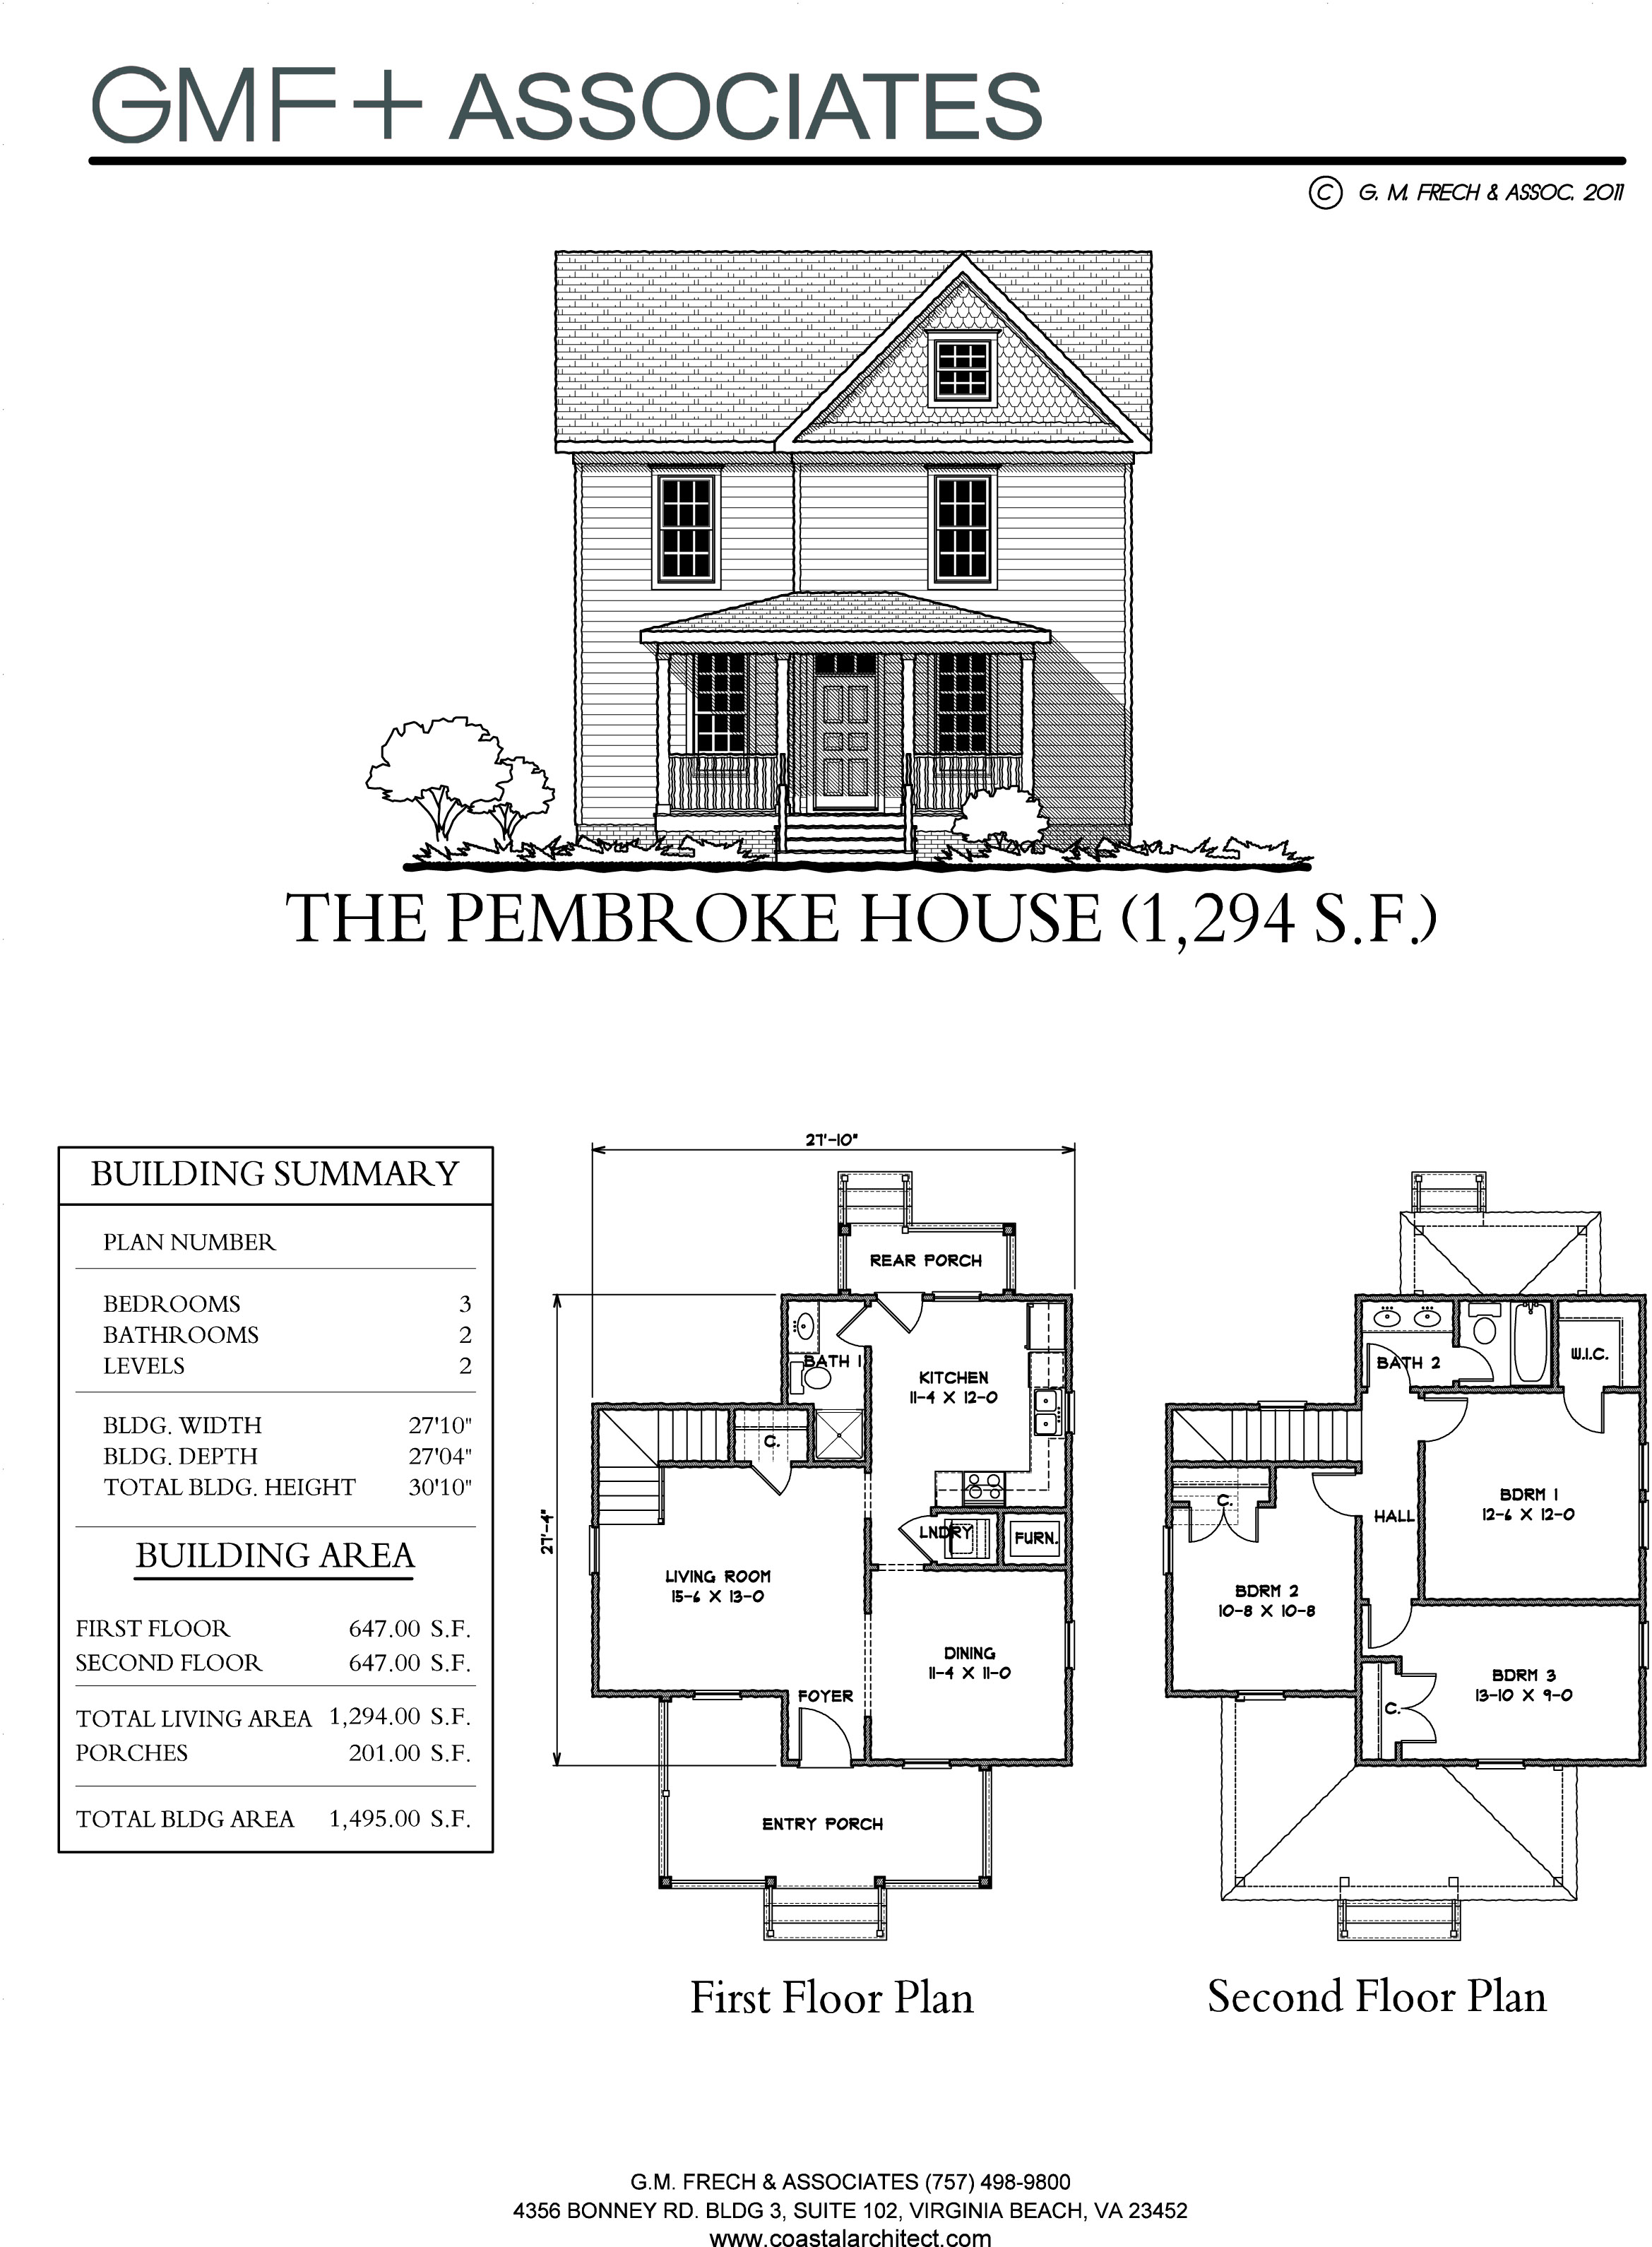 The pembroke keyplan gmf architects house plans gmf for Traditional neighborhood design house plans